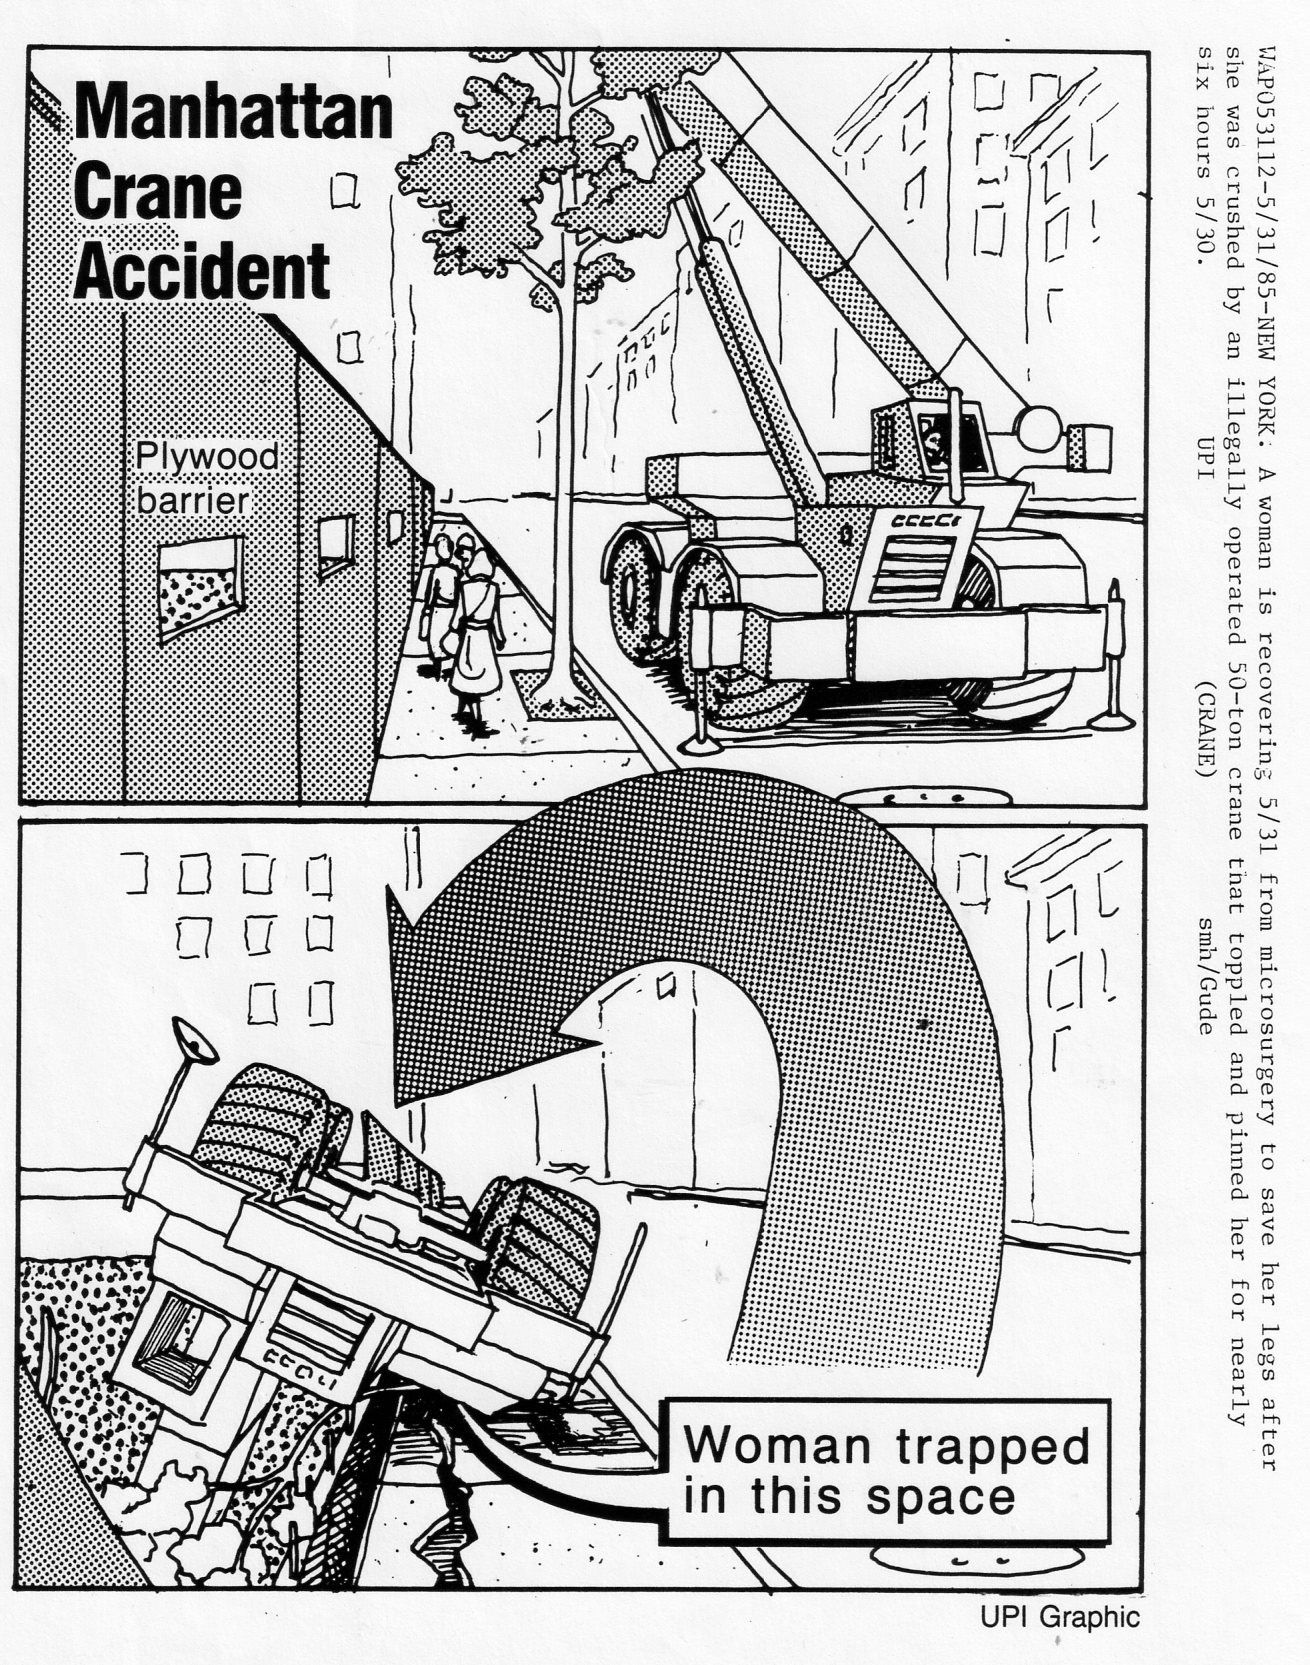 Charming Accident Drawing Software Photos - Wiring Diagram Ideas ...